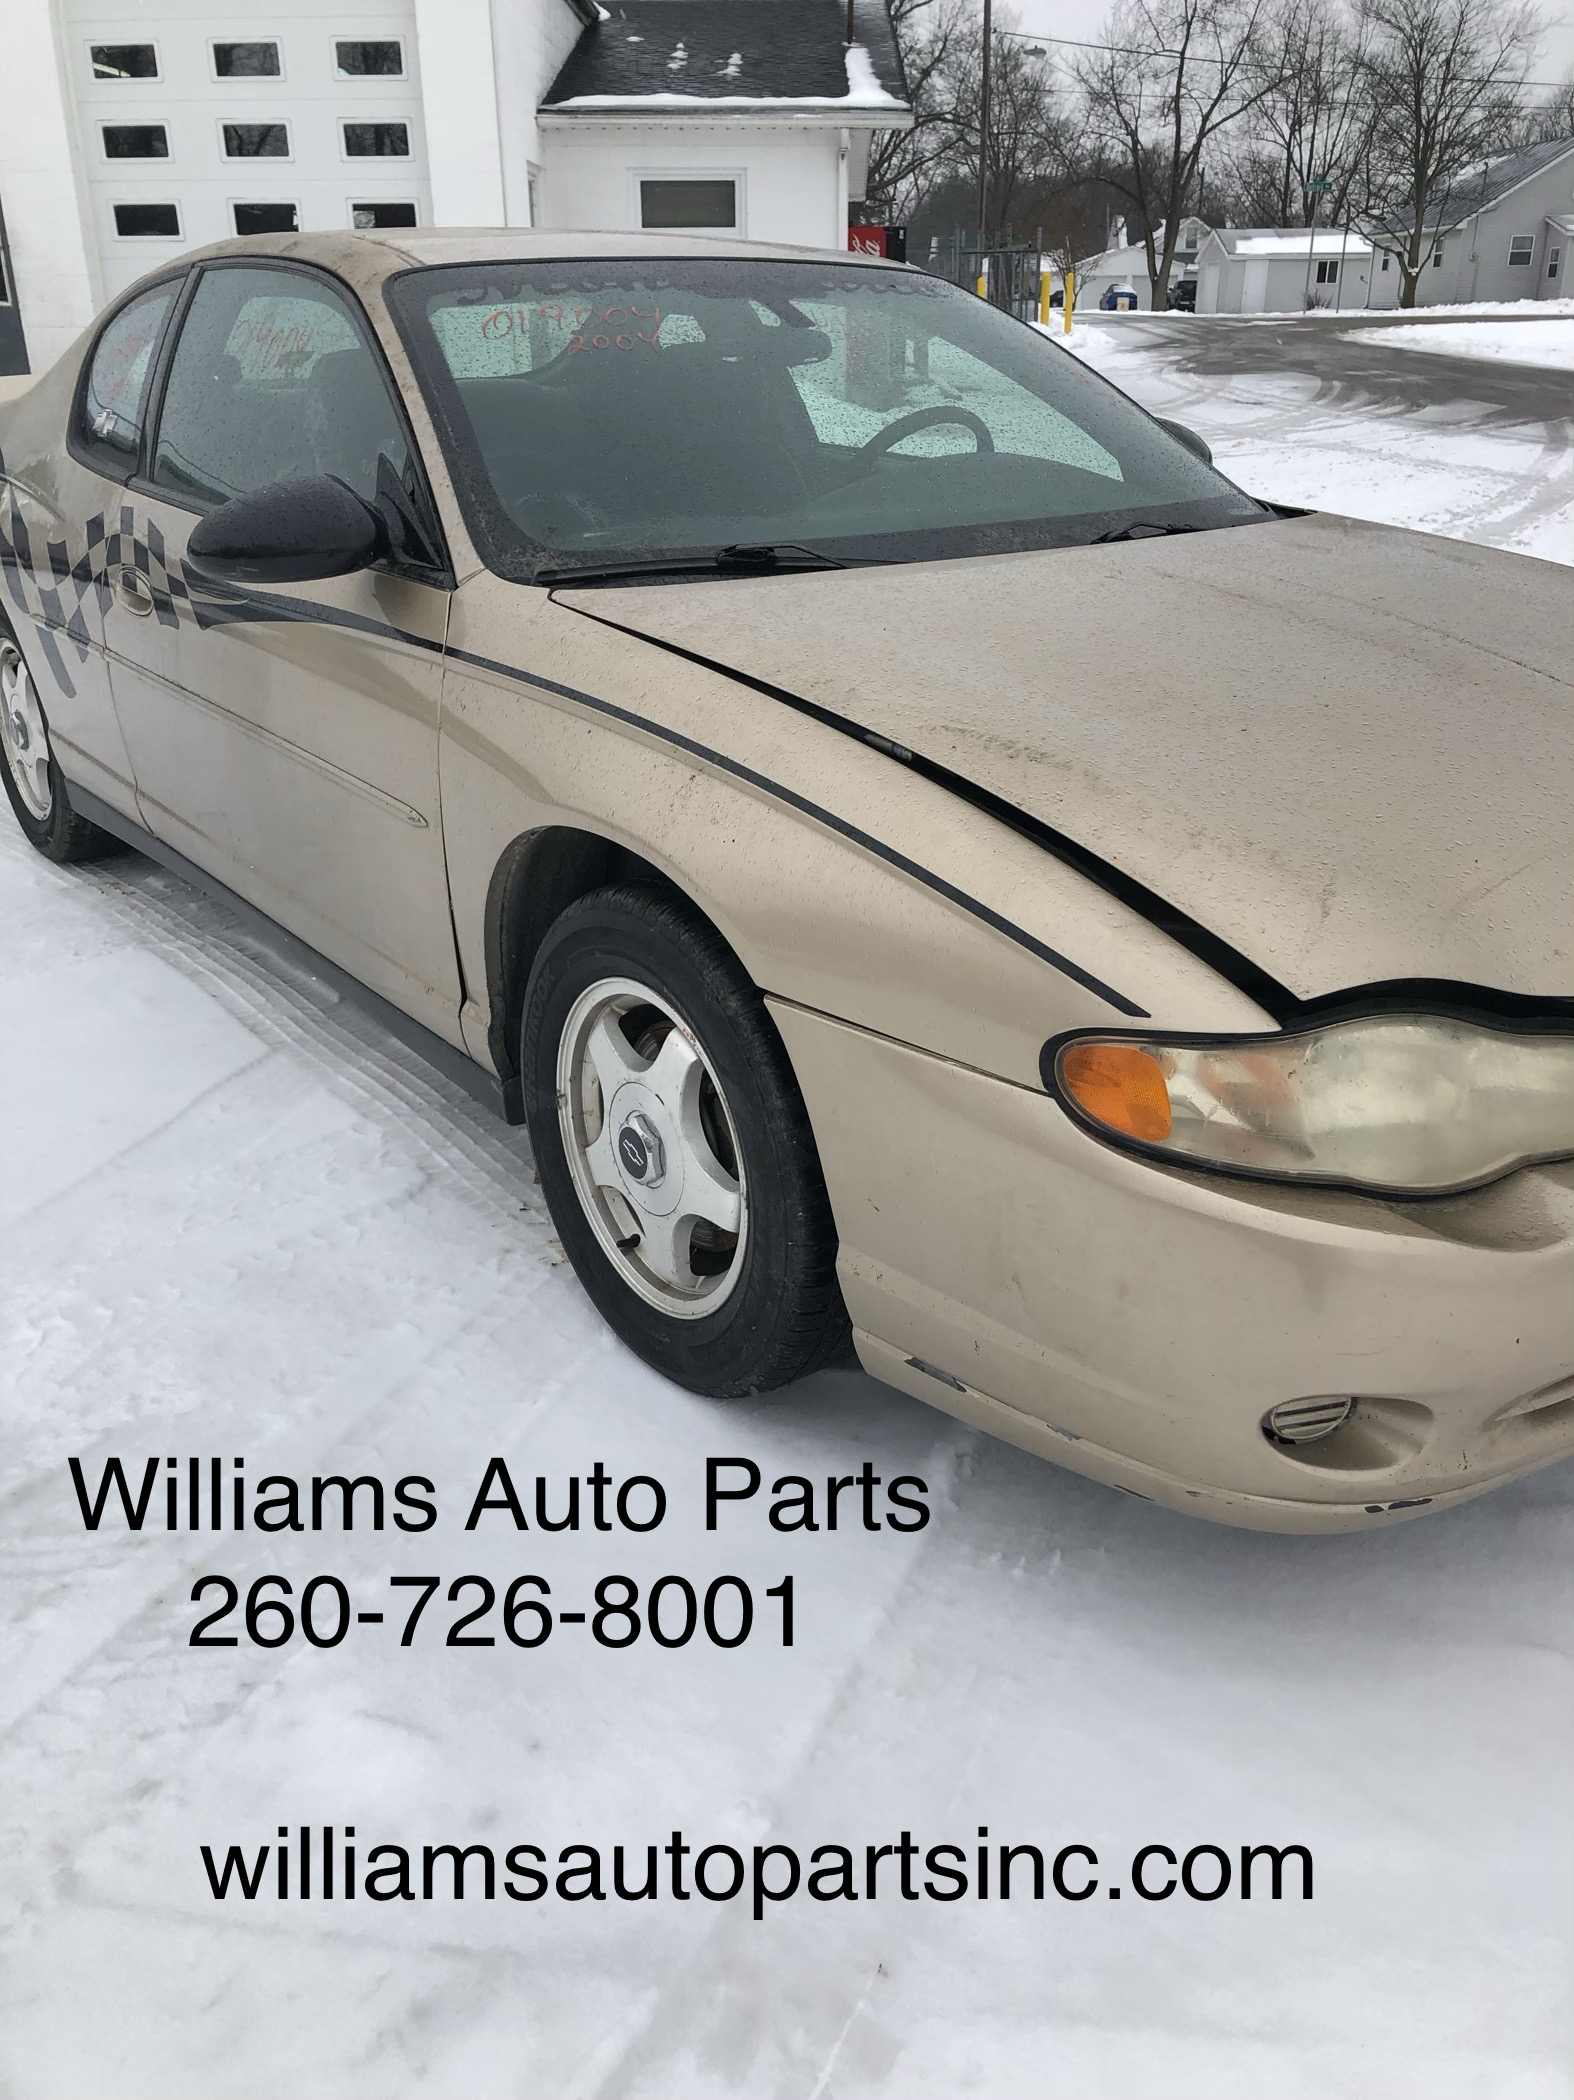 Williams Auto Parts | Your Midwest Used Auto Parts